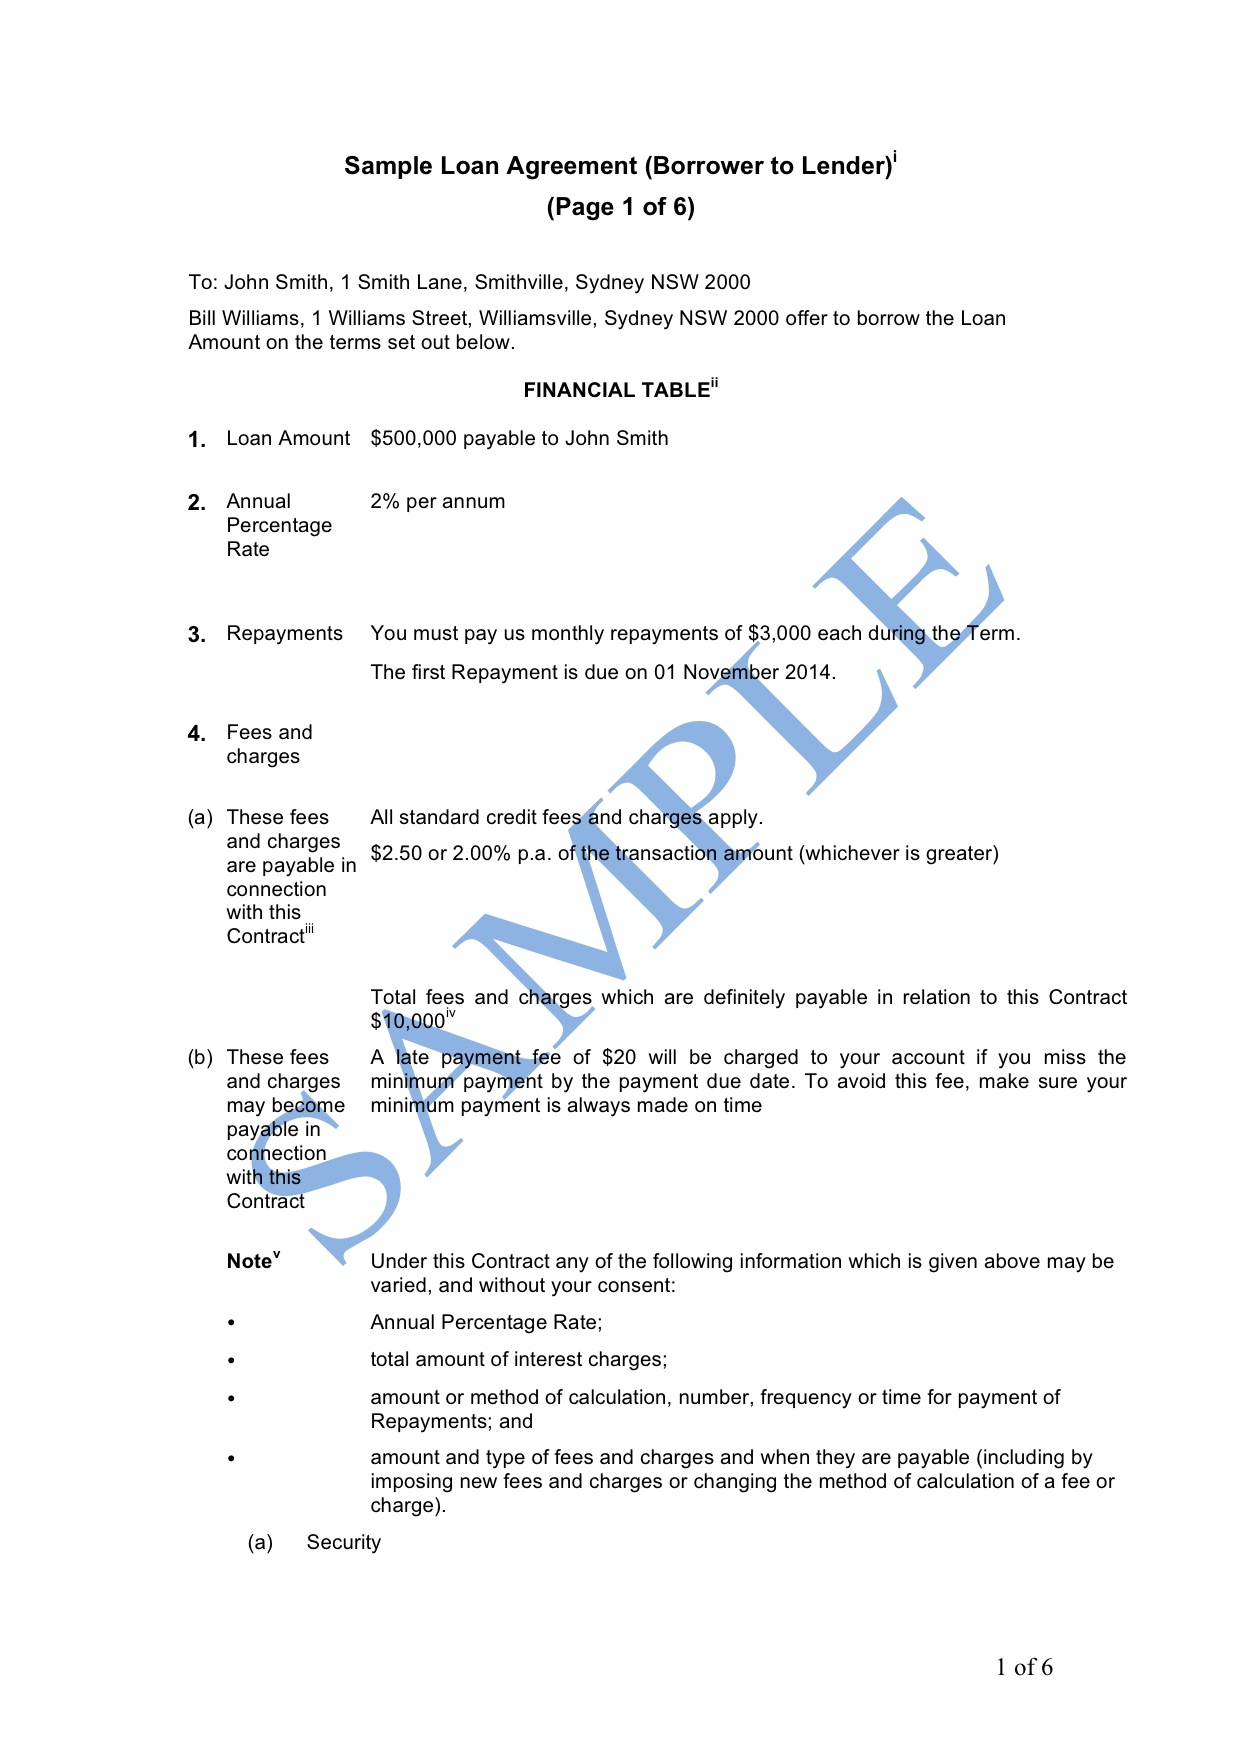 Loan Agreement Borrower to Lender Sample LawPath – Sample of Loan Contract